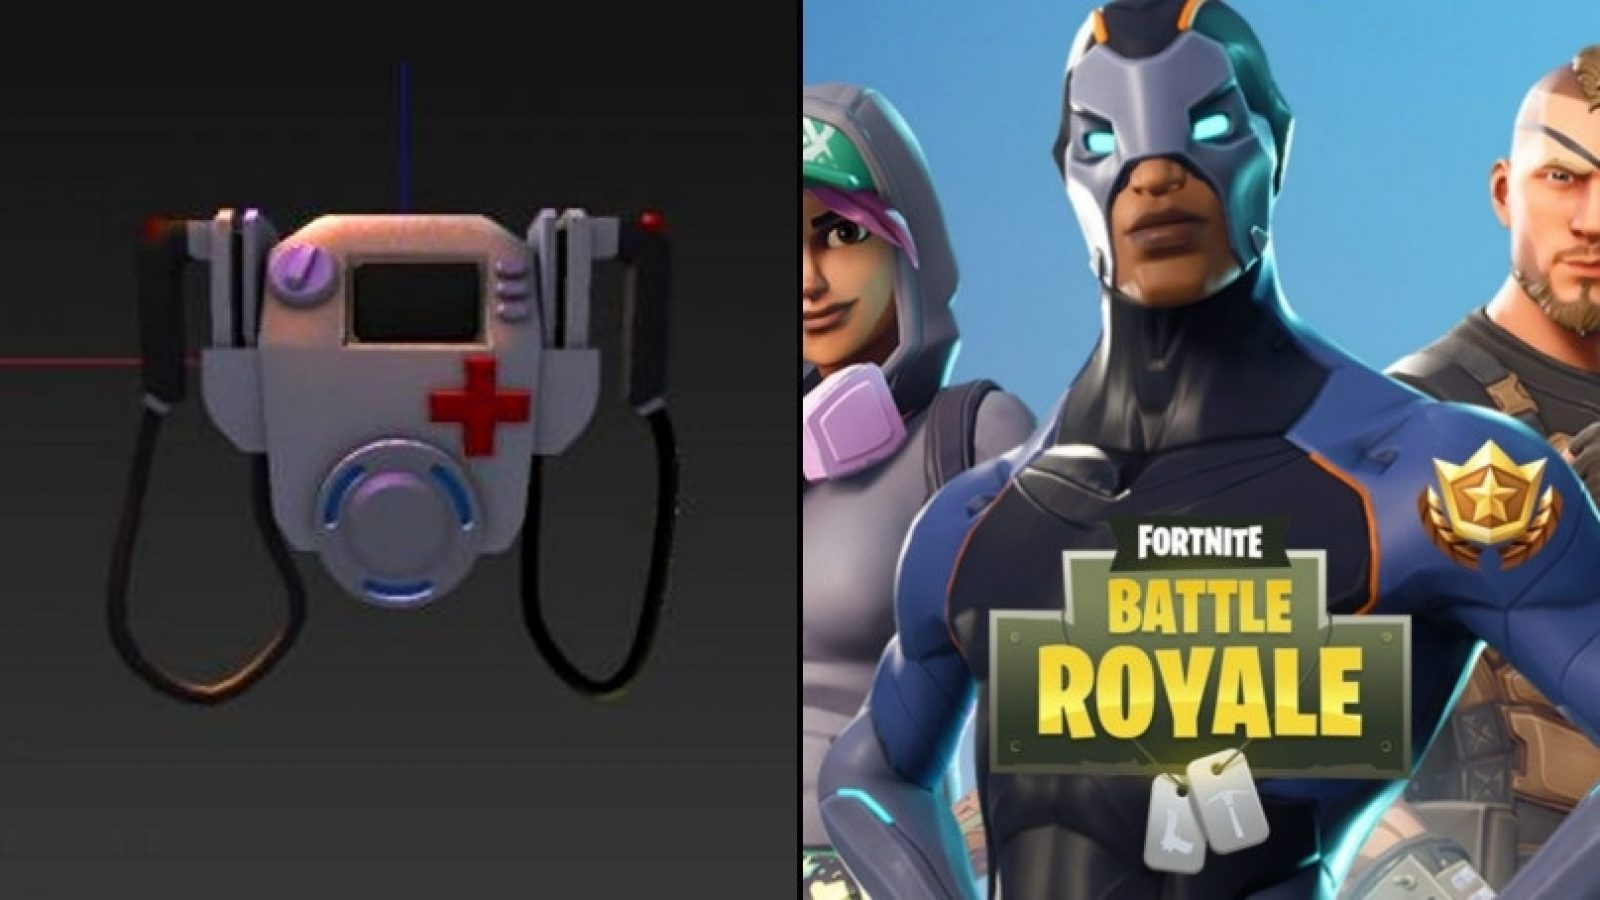 New Leaked Fortnite Files Reveal Possible Images and Descriptions 1600x900